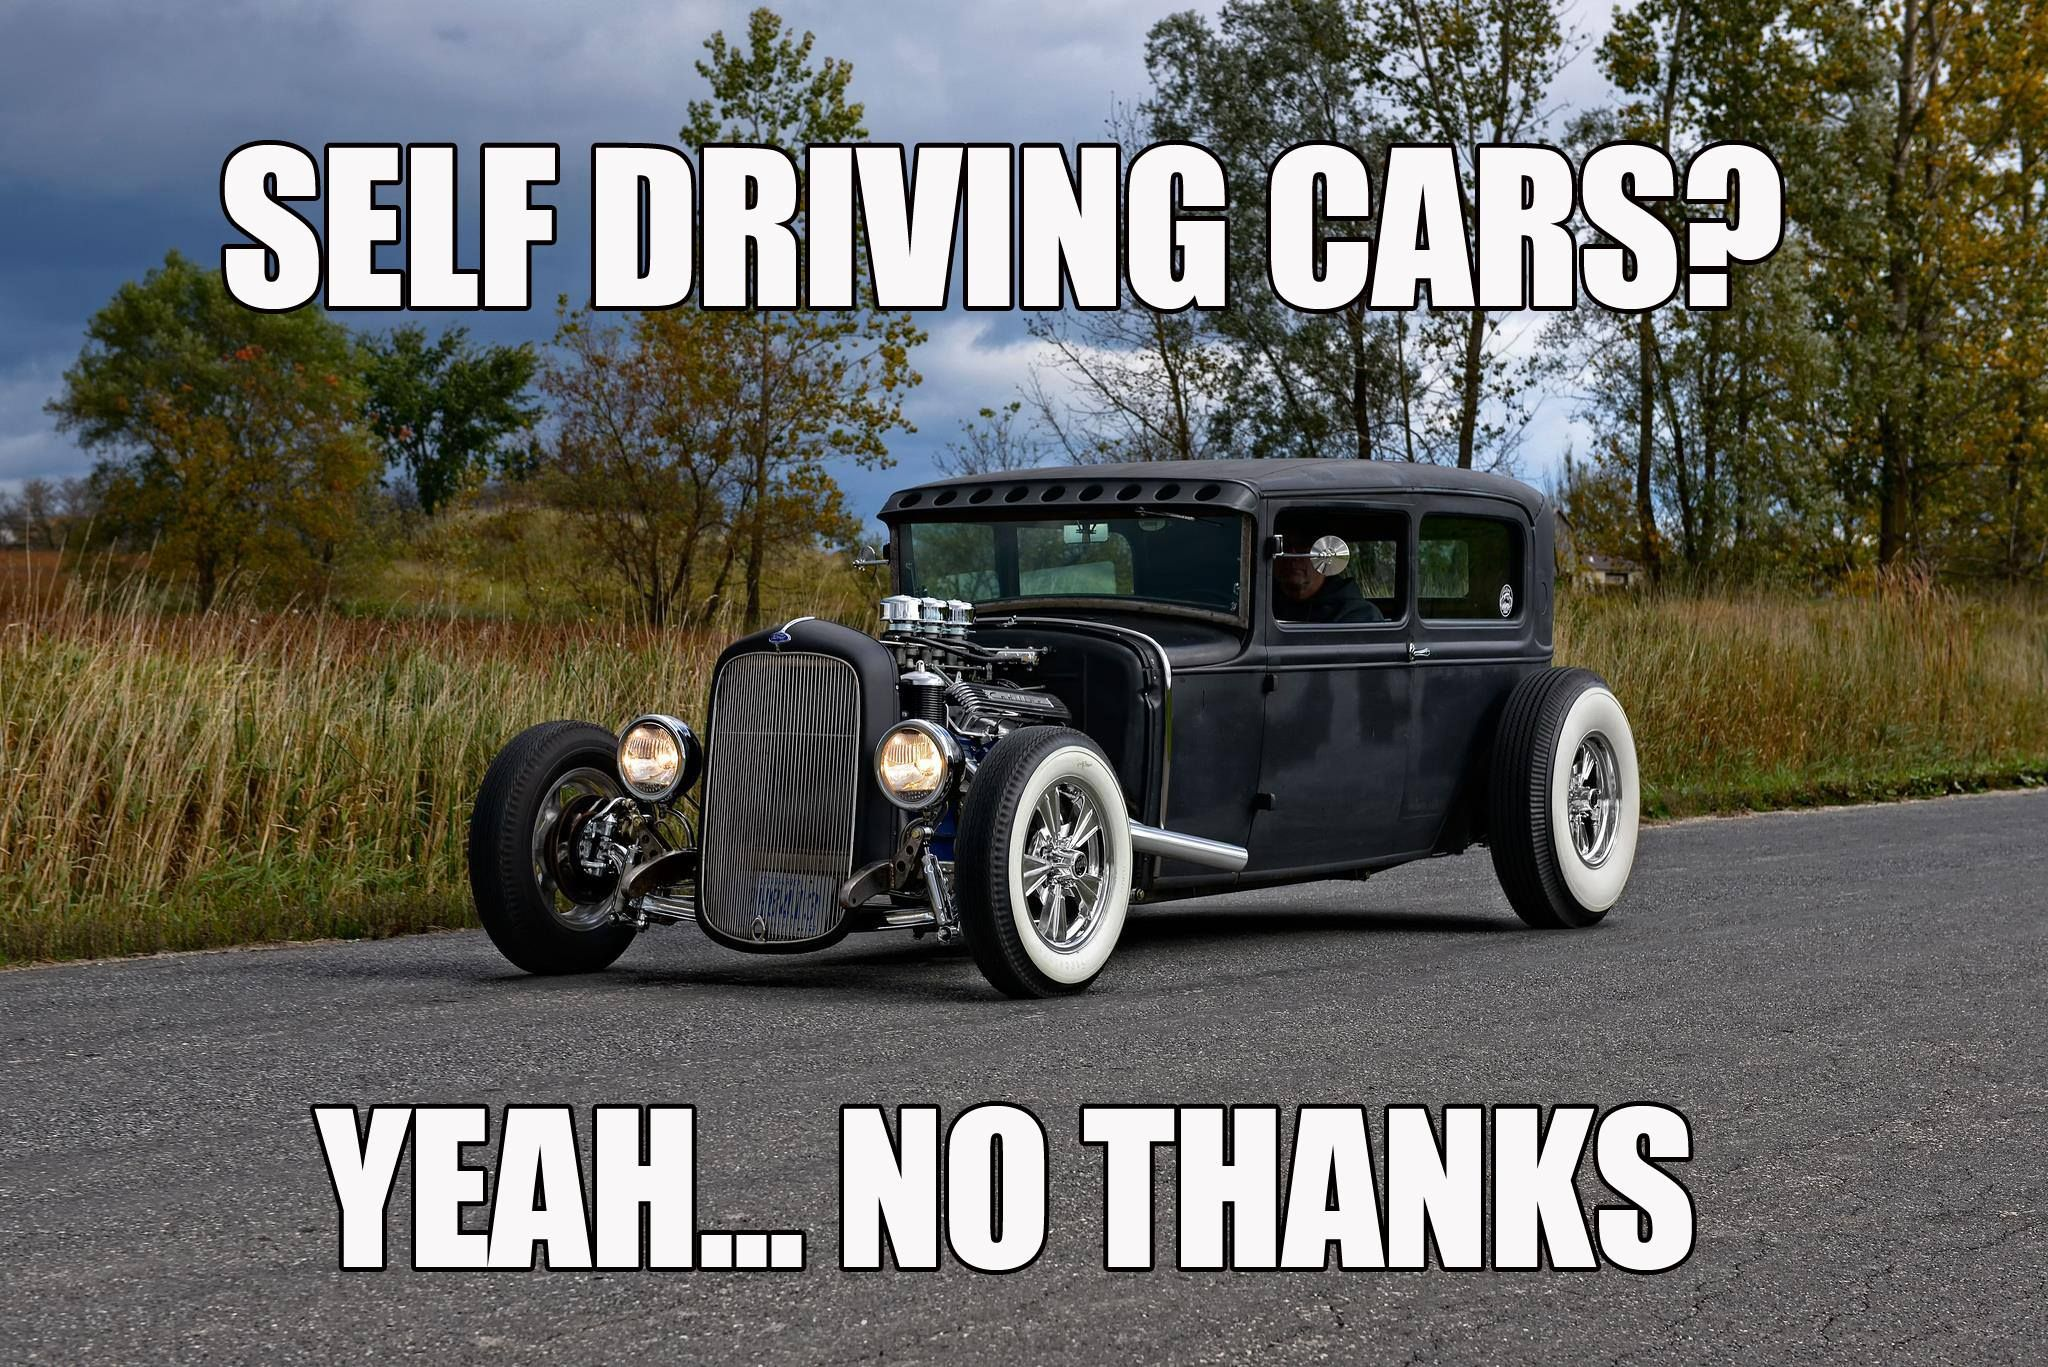 Self driving cars? Yeah.... no thanks. gearhead meme | Main theme ...